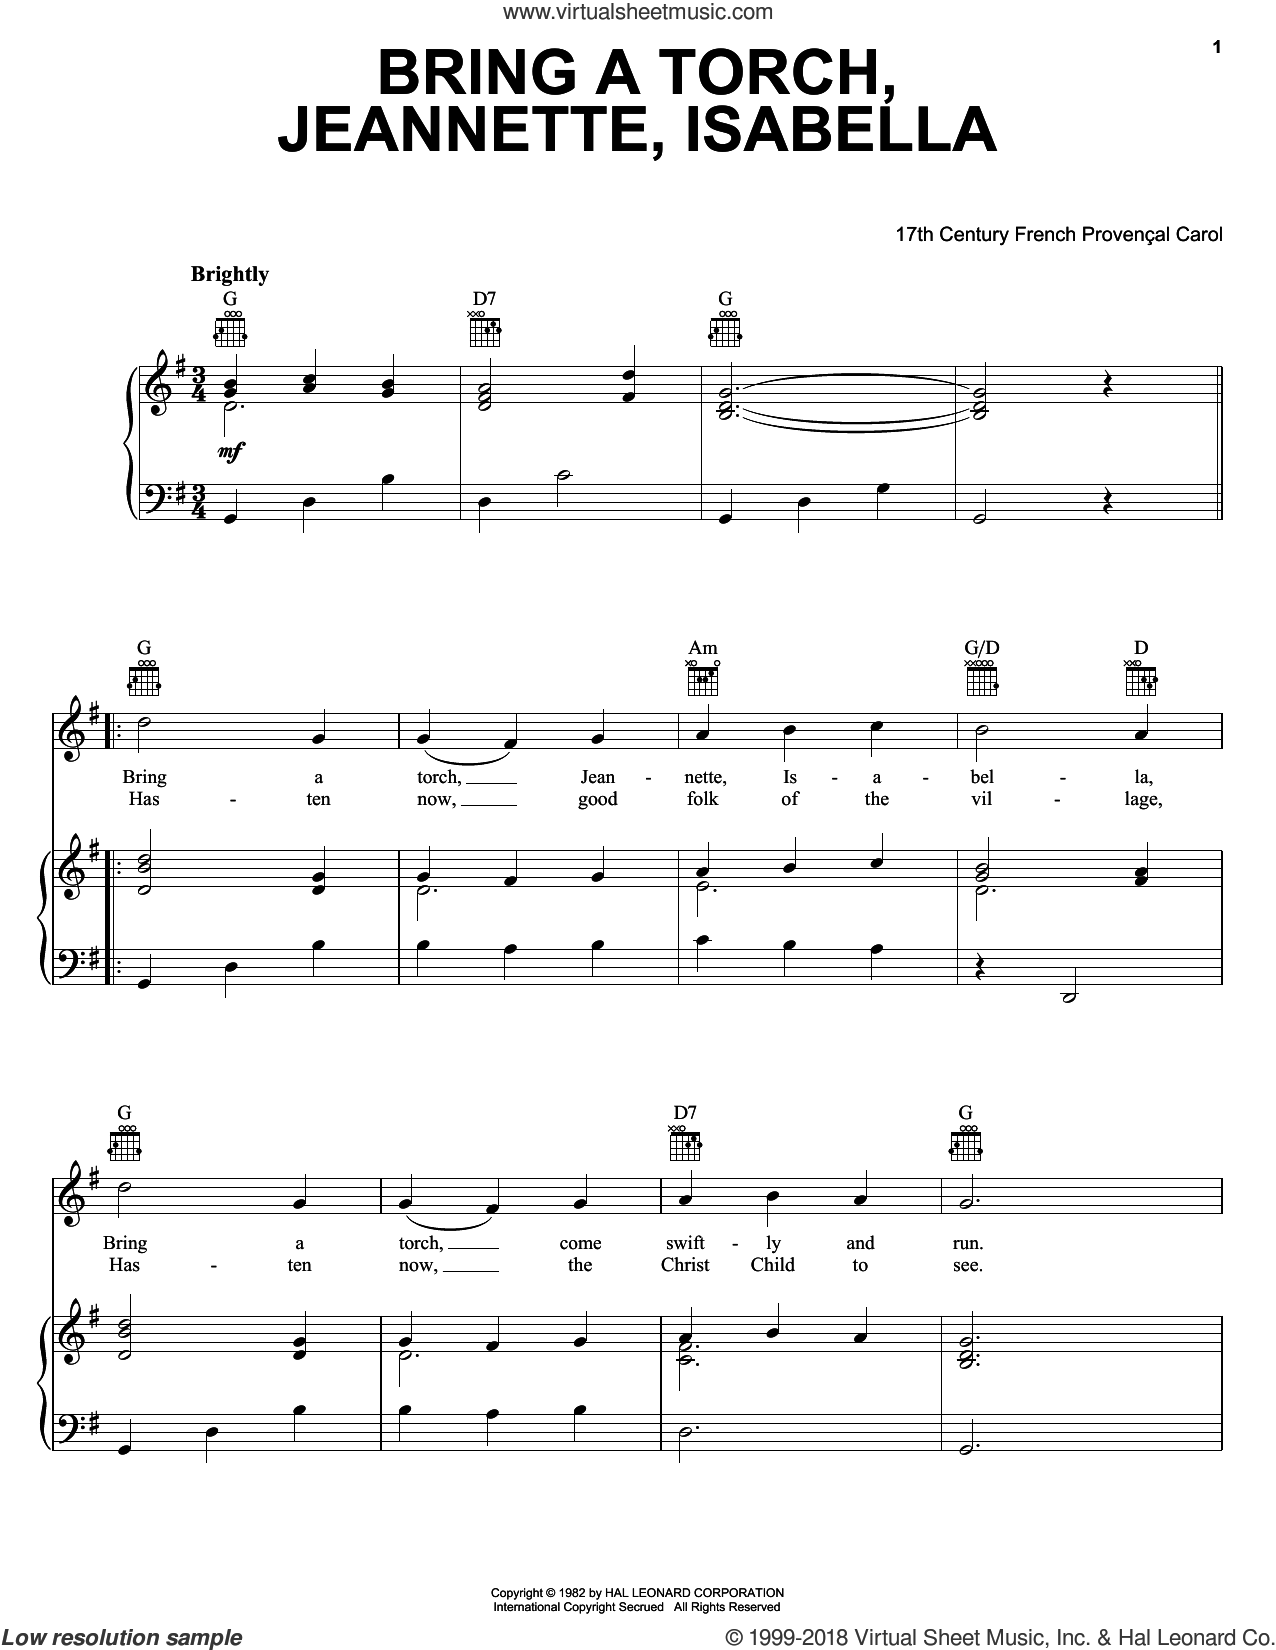 Bring A Torch, Jeannette Isabella sheet music for voice, piano or guitar by Anonymous and Miscellaneous. Score Image Preview.